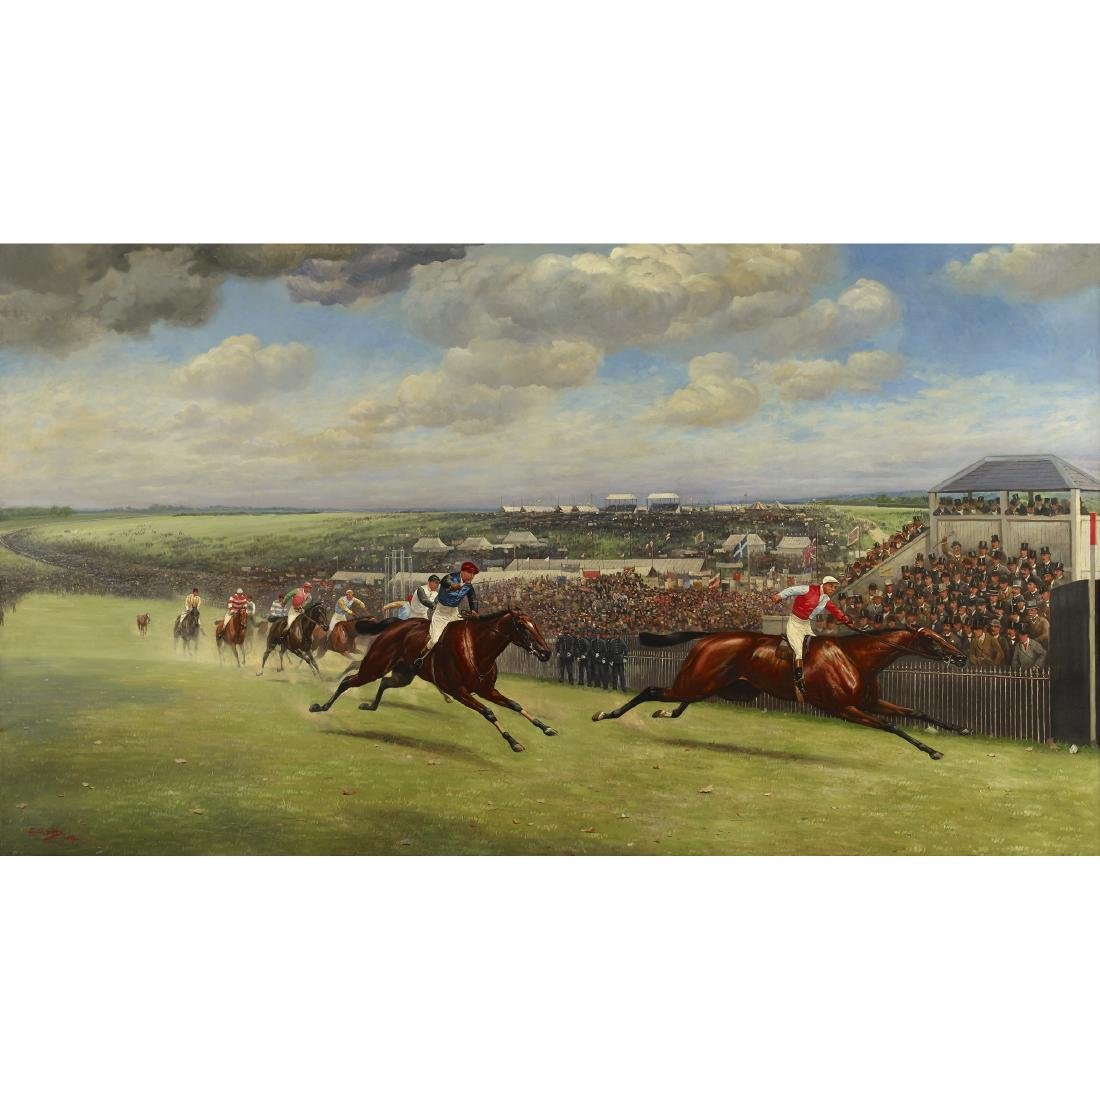 THE FINISH OF THE DERBY, 1893 by Major G.D. Giles